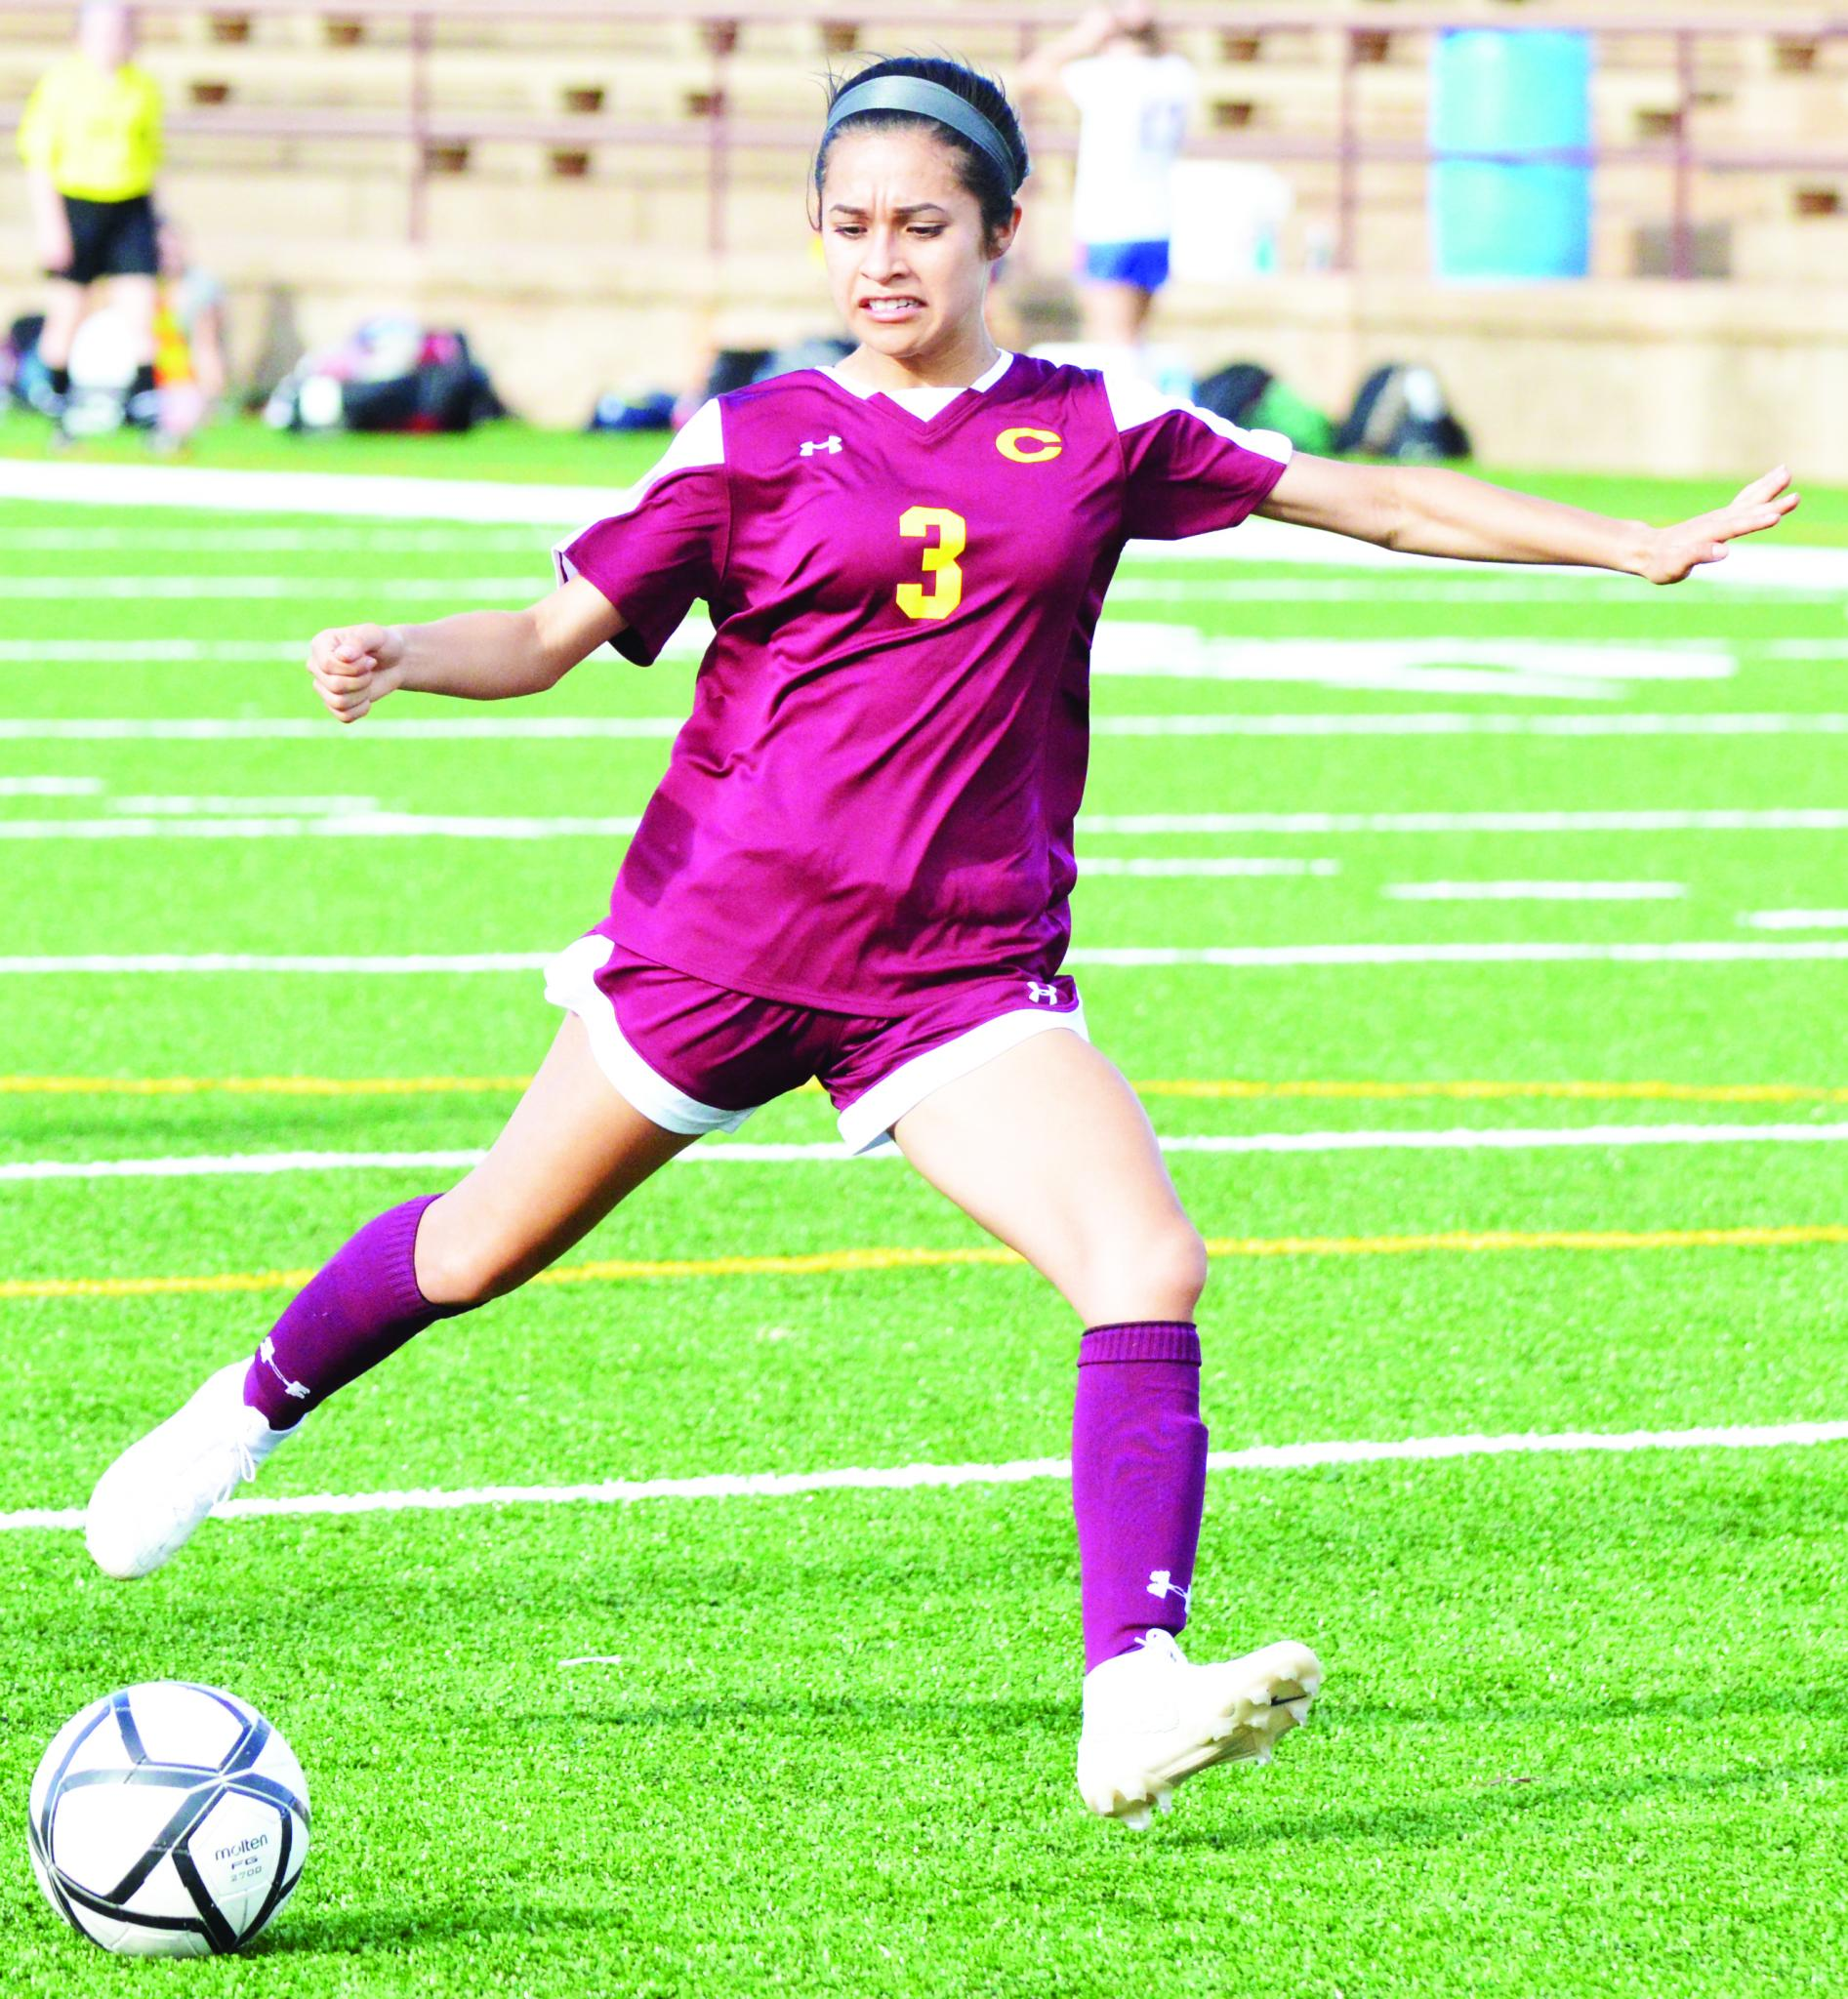 Clinton junior forward Macey Fernandez scored Clinton's third goal versus Newcastle to seal up the Lady Reds' fifth district win. Fernandez has scored a team-leading 15 goals this year.